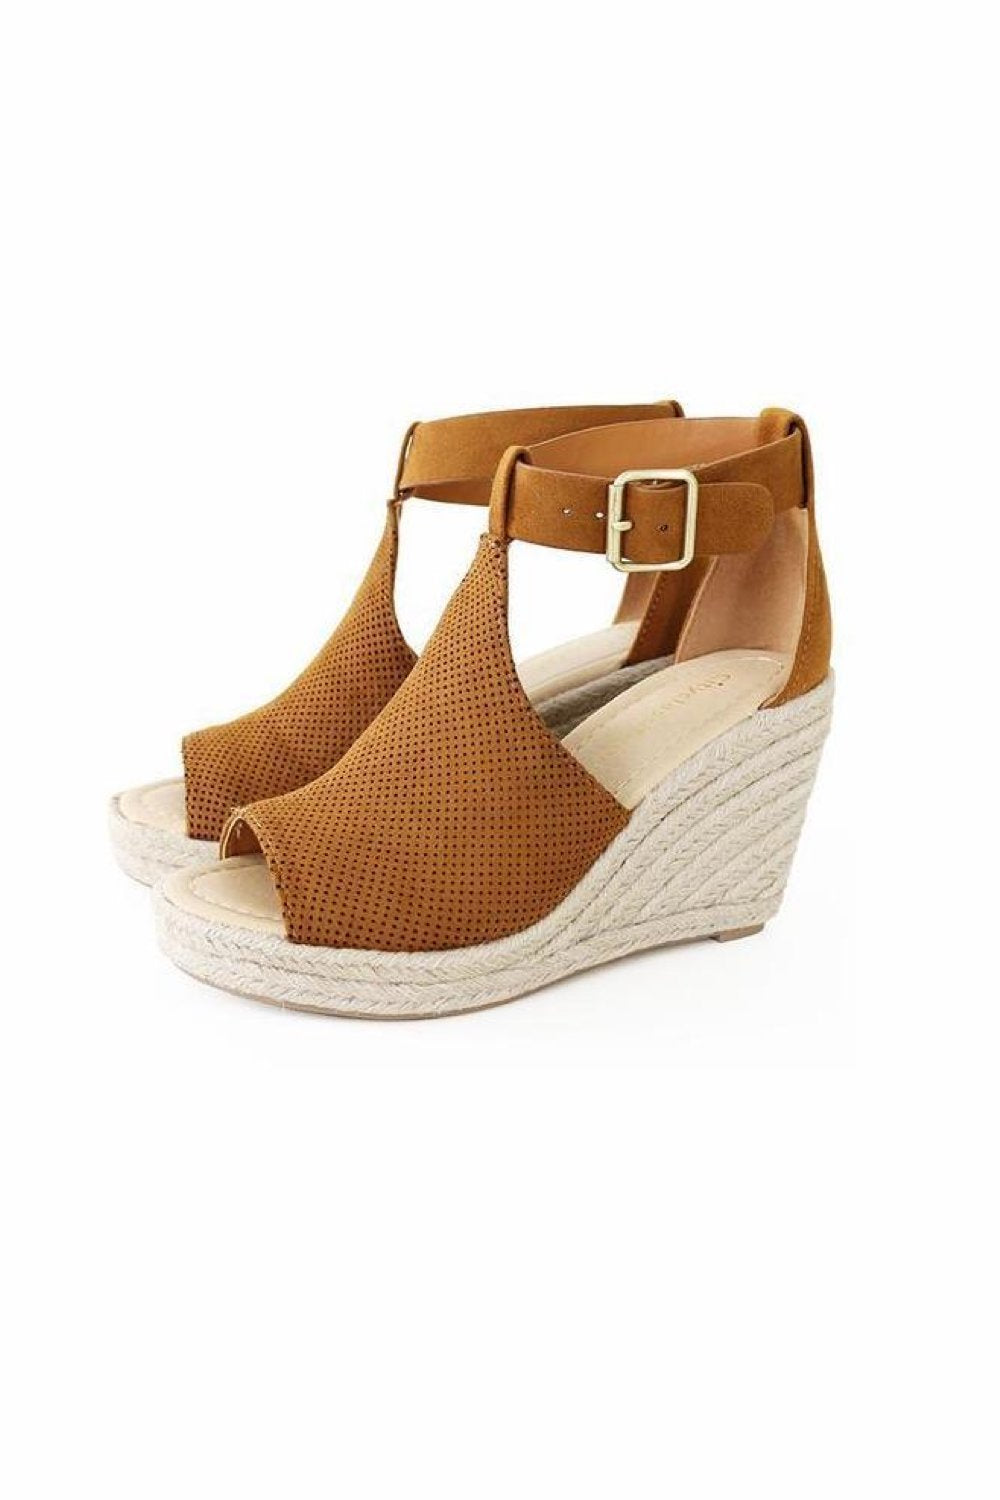 Casier Wedge Camel